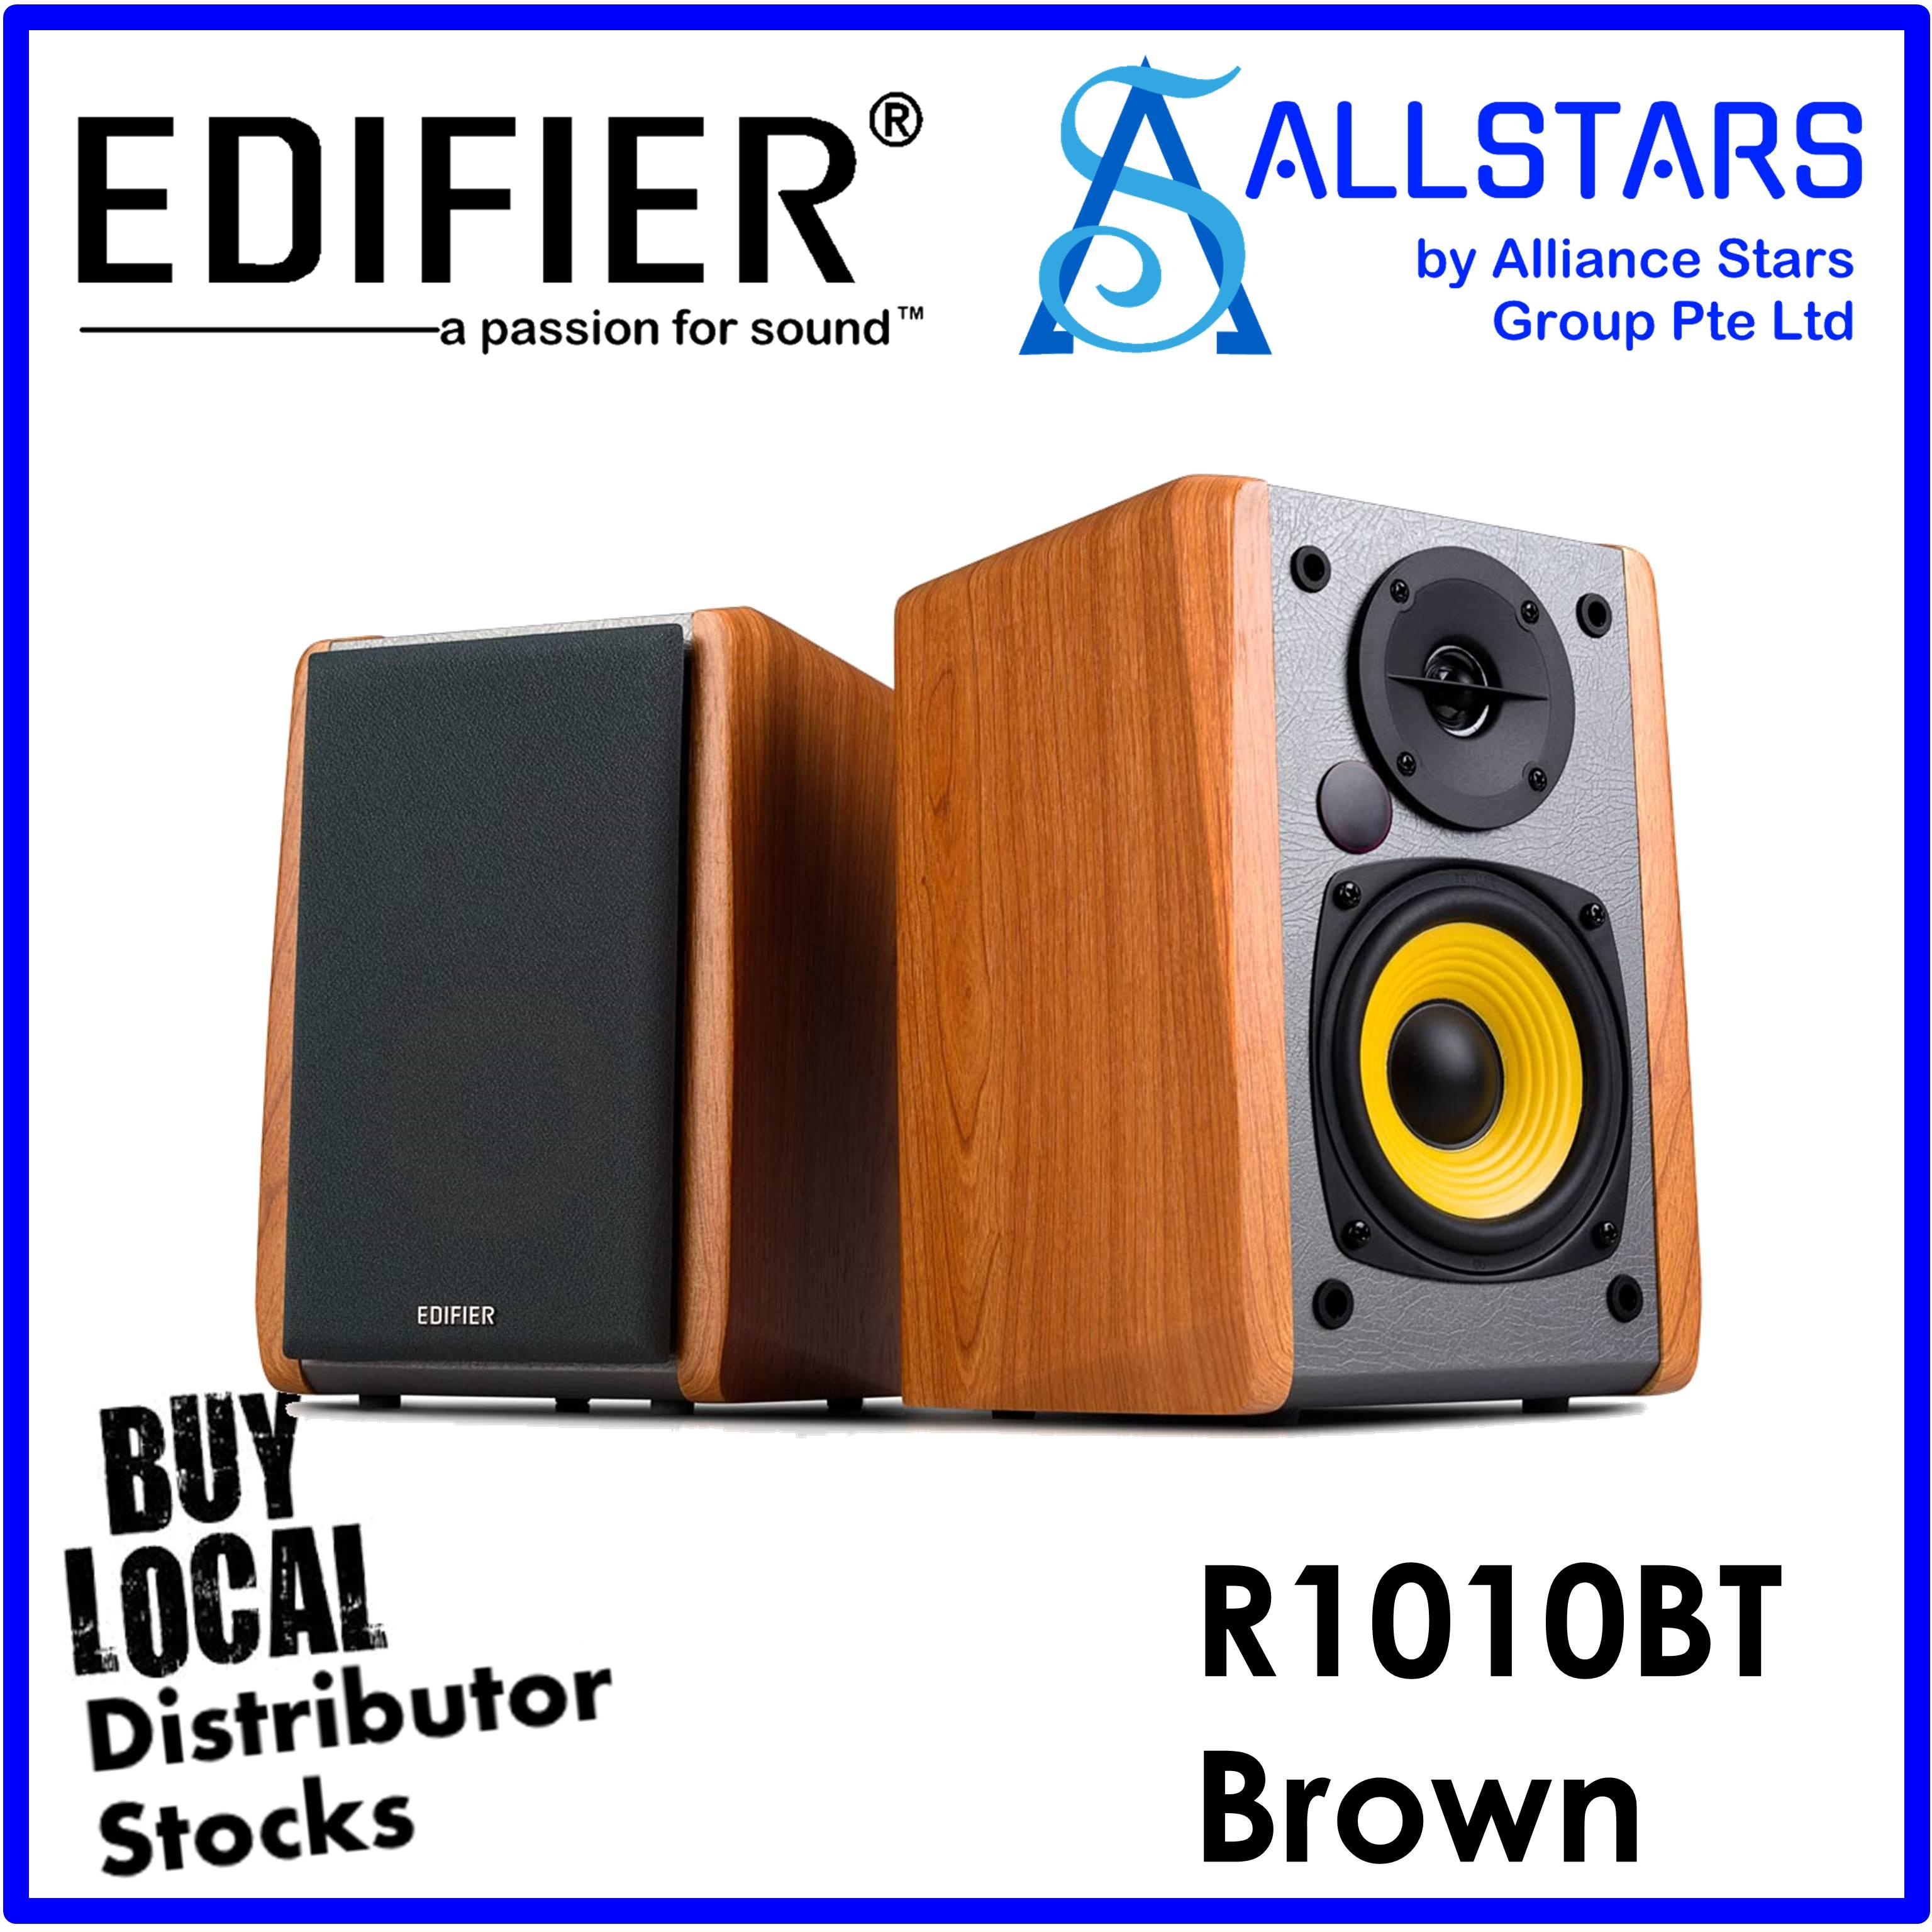 (ALLSTARS : WE ARE BACK / 9.9 PROMO) EDIFIER BROWN R1010 BT / R1010BT 2.0 Speaker / Bluetooth (Local Warranty 2years with BanLeong)